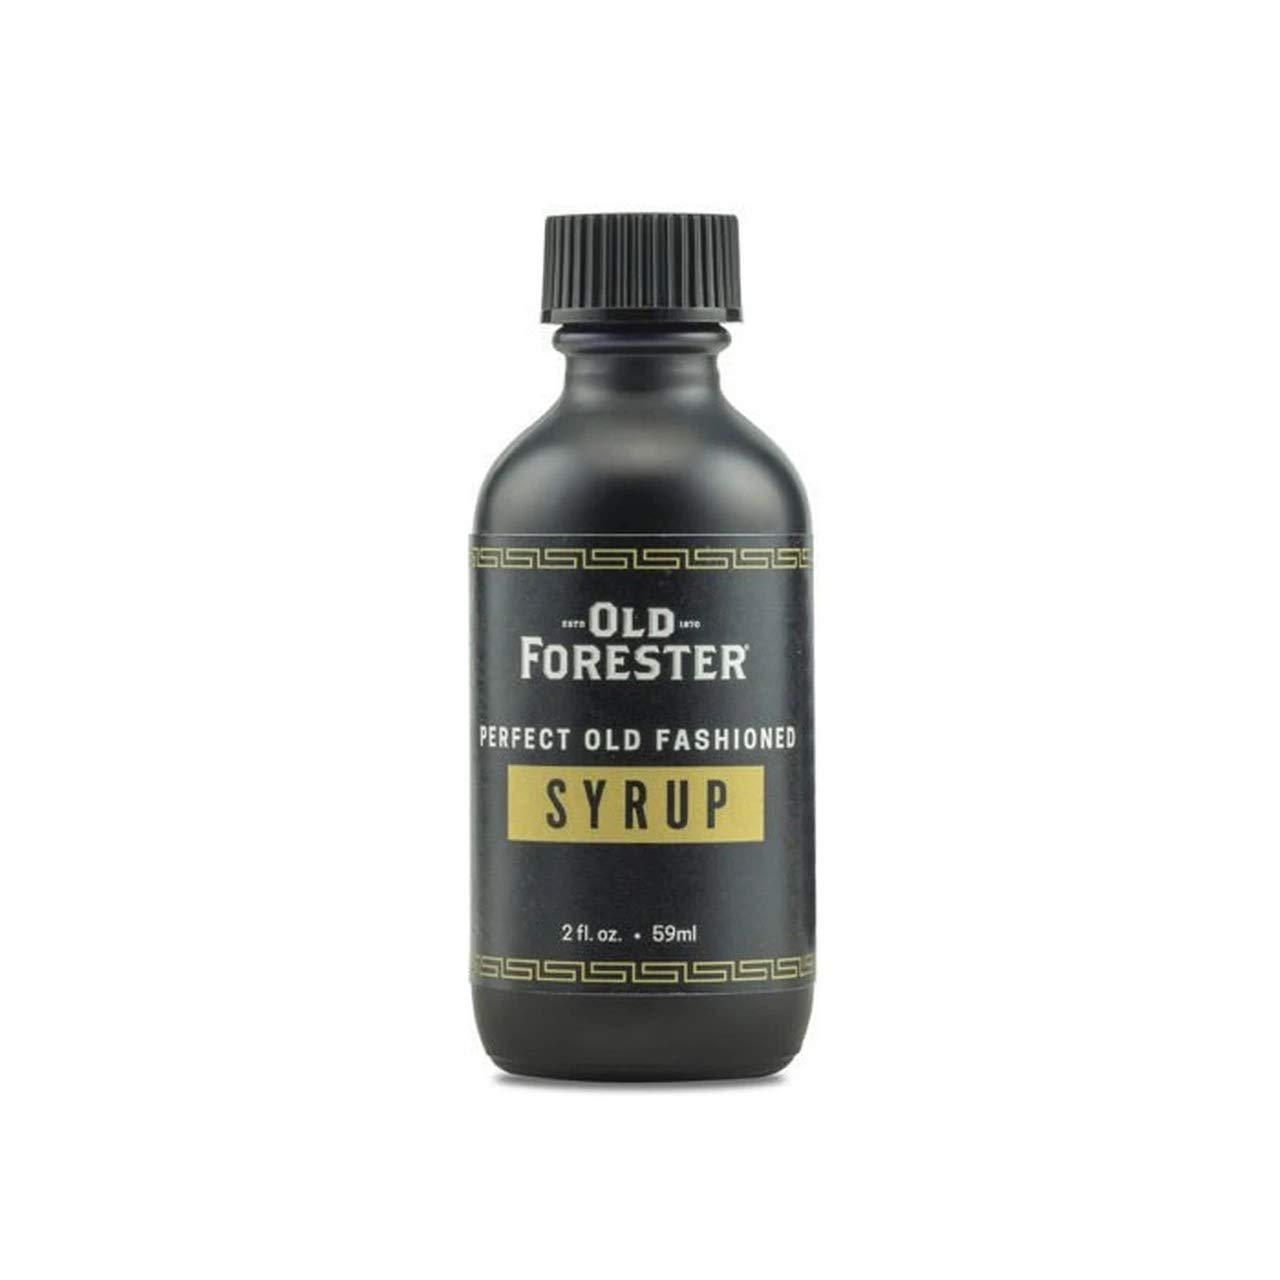 Perfect Old Fashioned Syrup